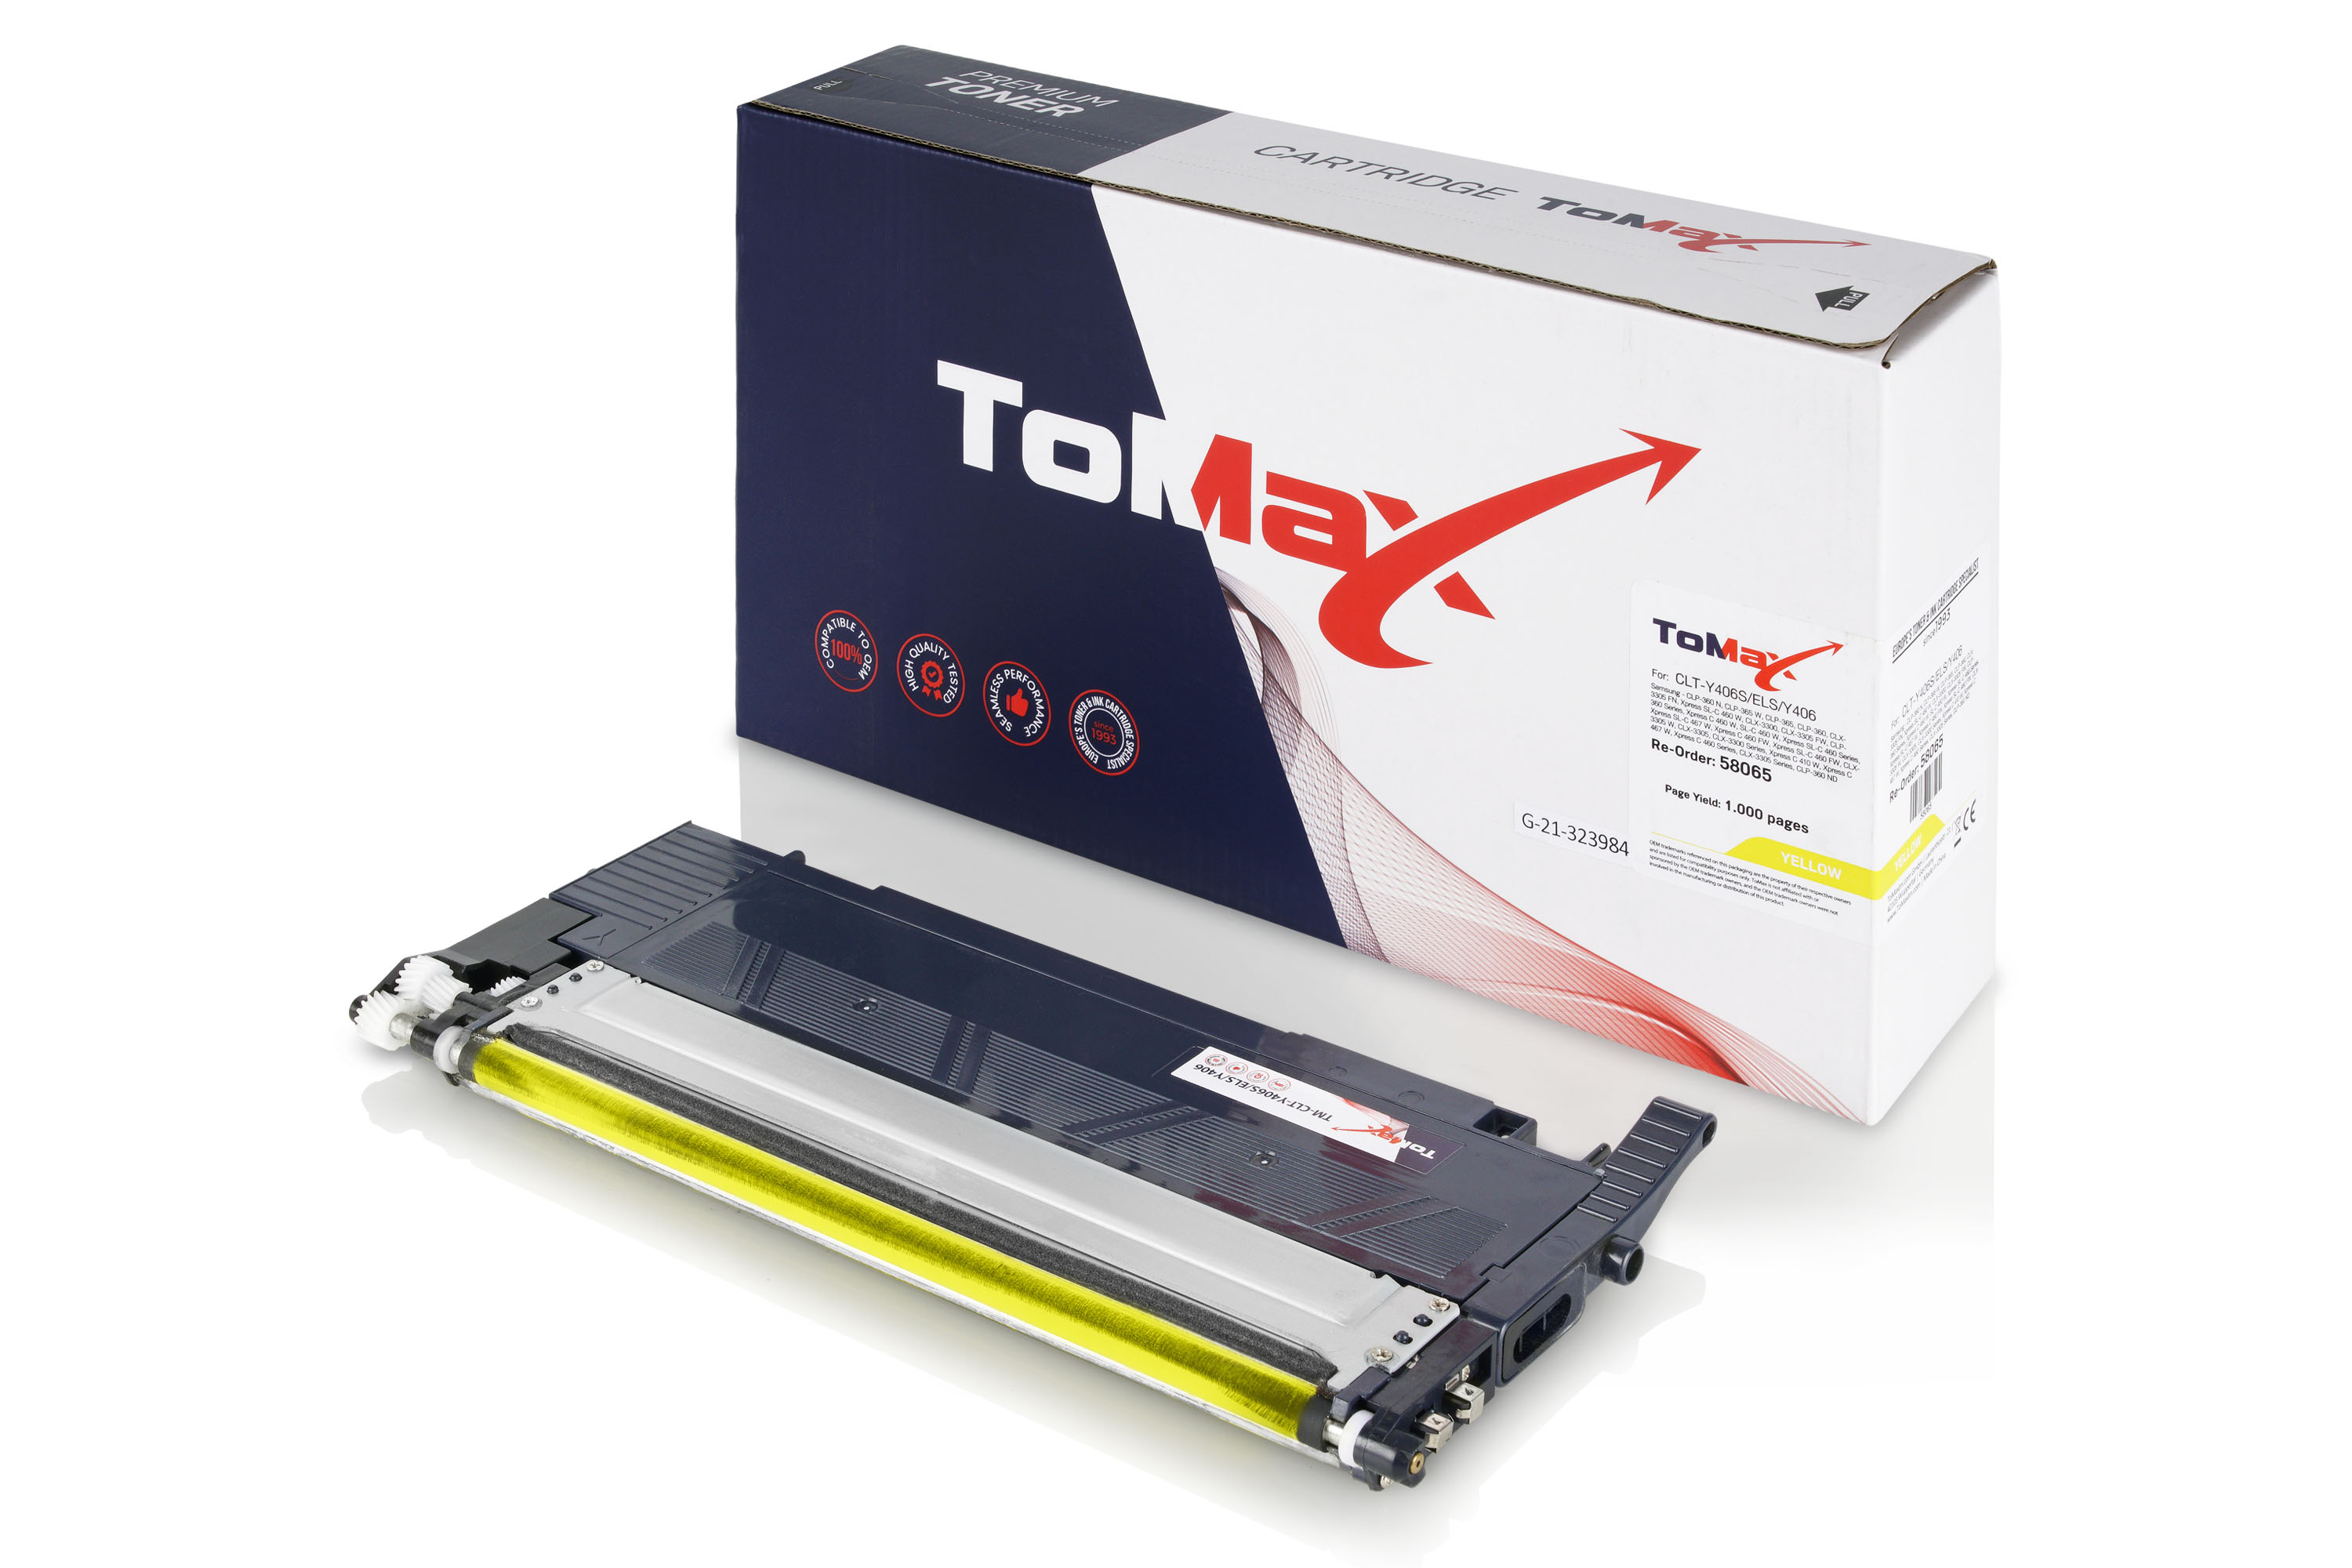 ToMax Premium Toner Cartridge replaces Samsung CLT-Y406S (SU462A) / Y406S Yellow